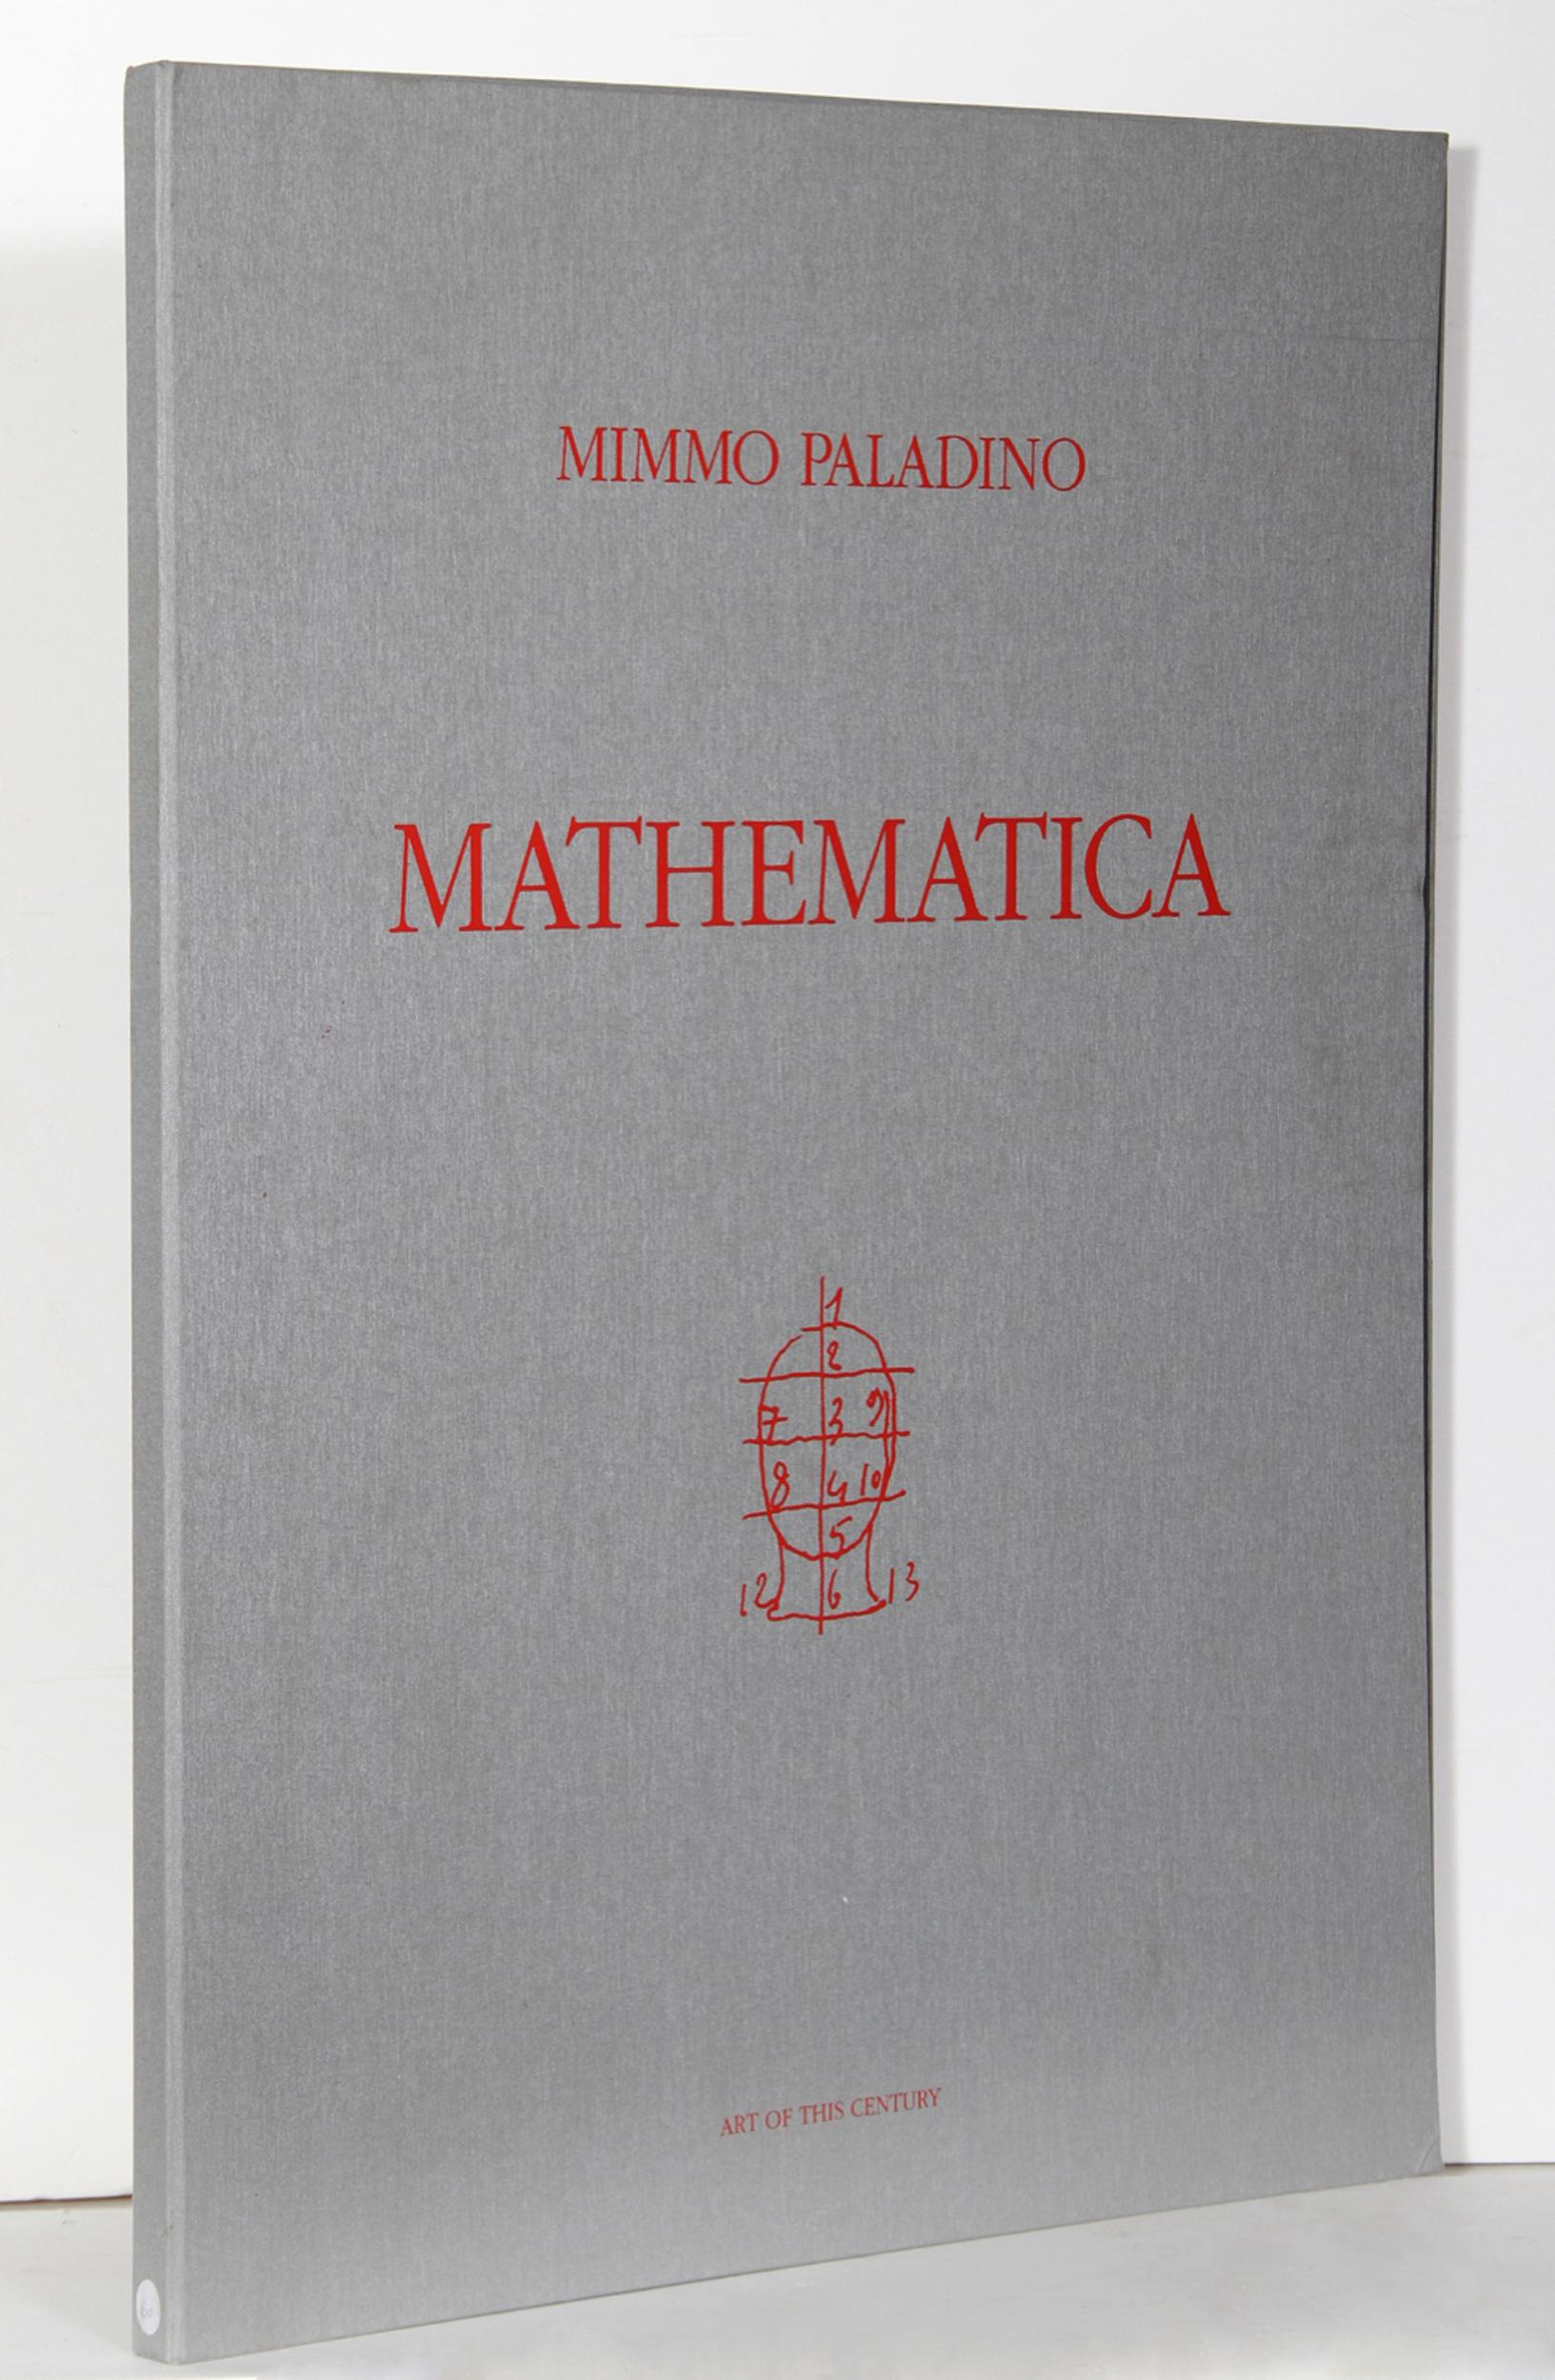 Mimmo Paladino, Mathematica, Portfolio of Six Aquatint Etchings